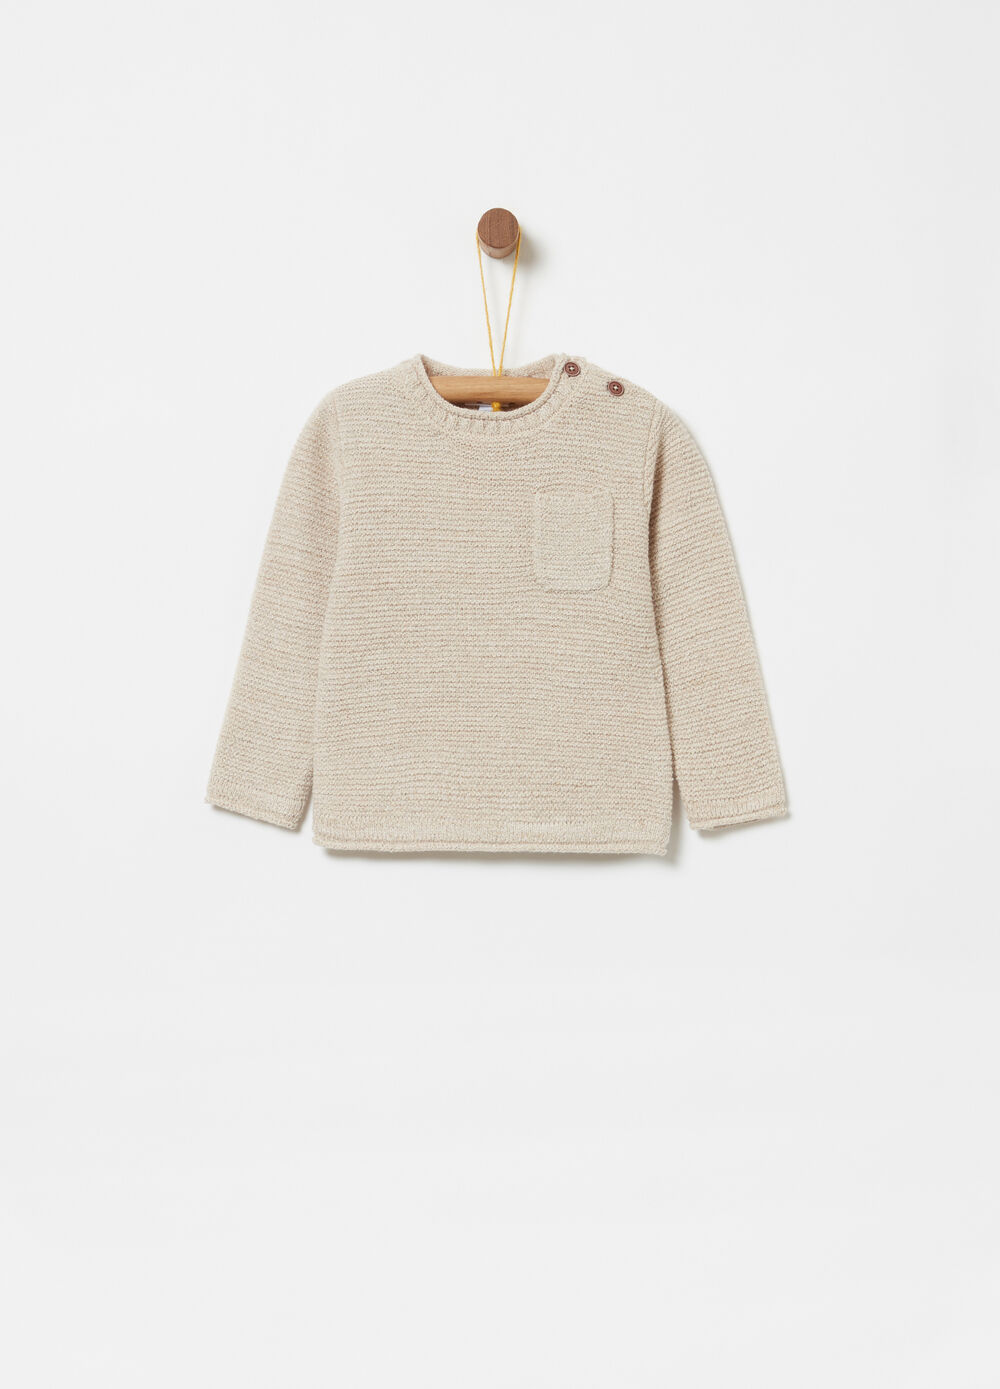 Knitted pullover with pocket